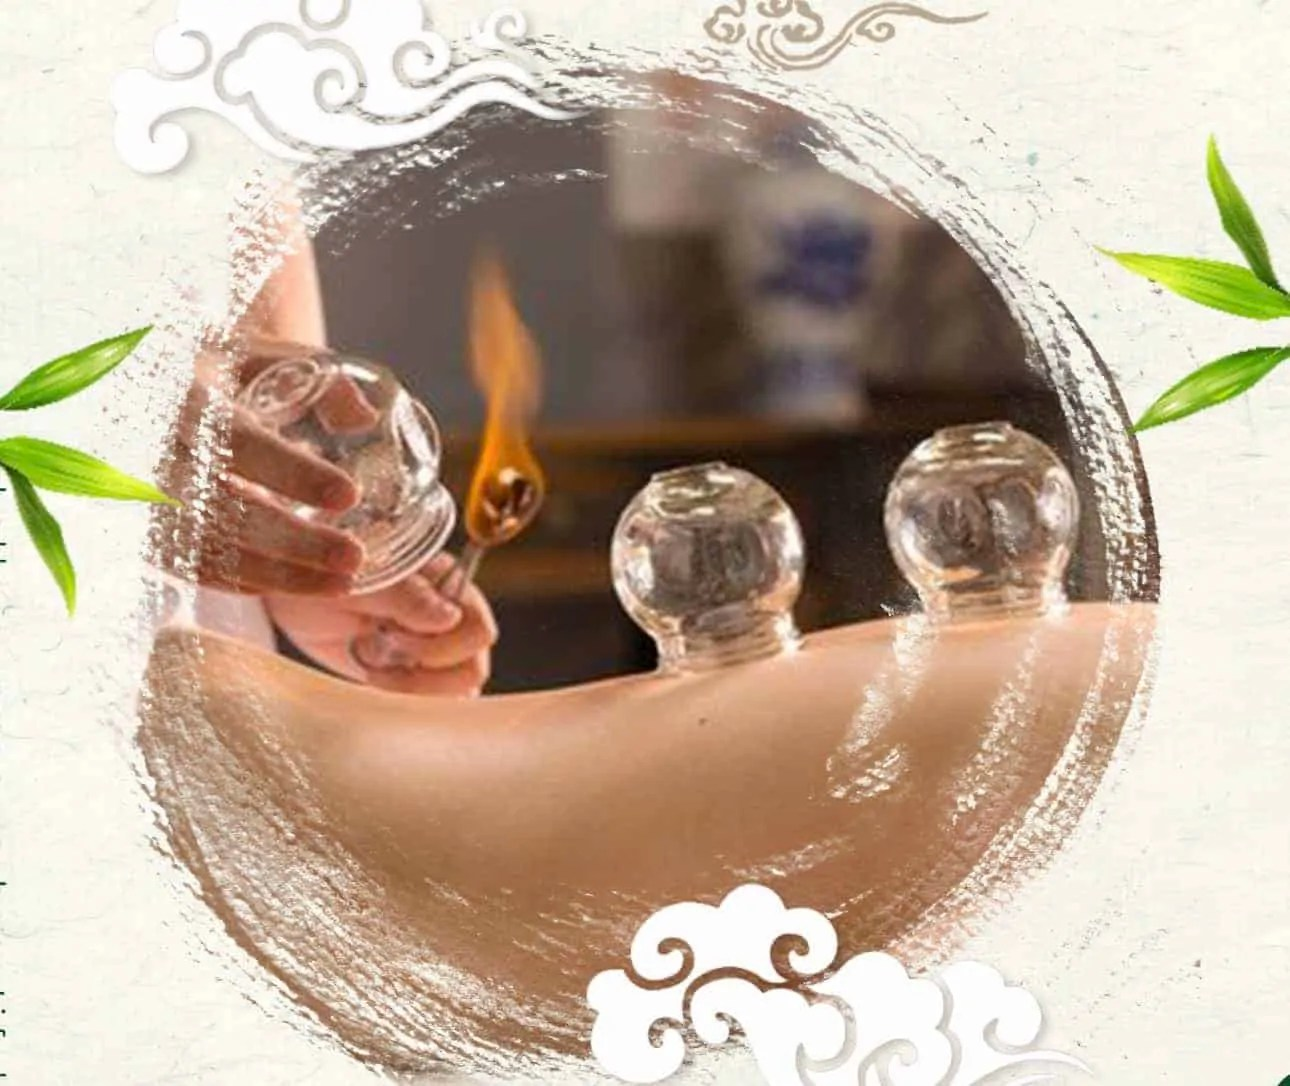 How To Effectively Do Cupping Therapy at Home